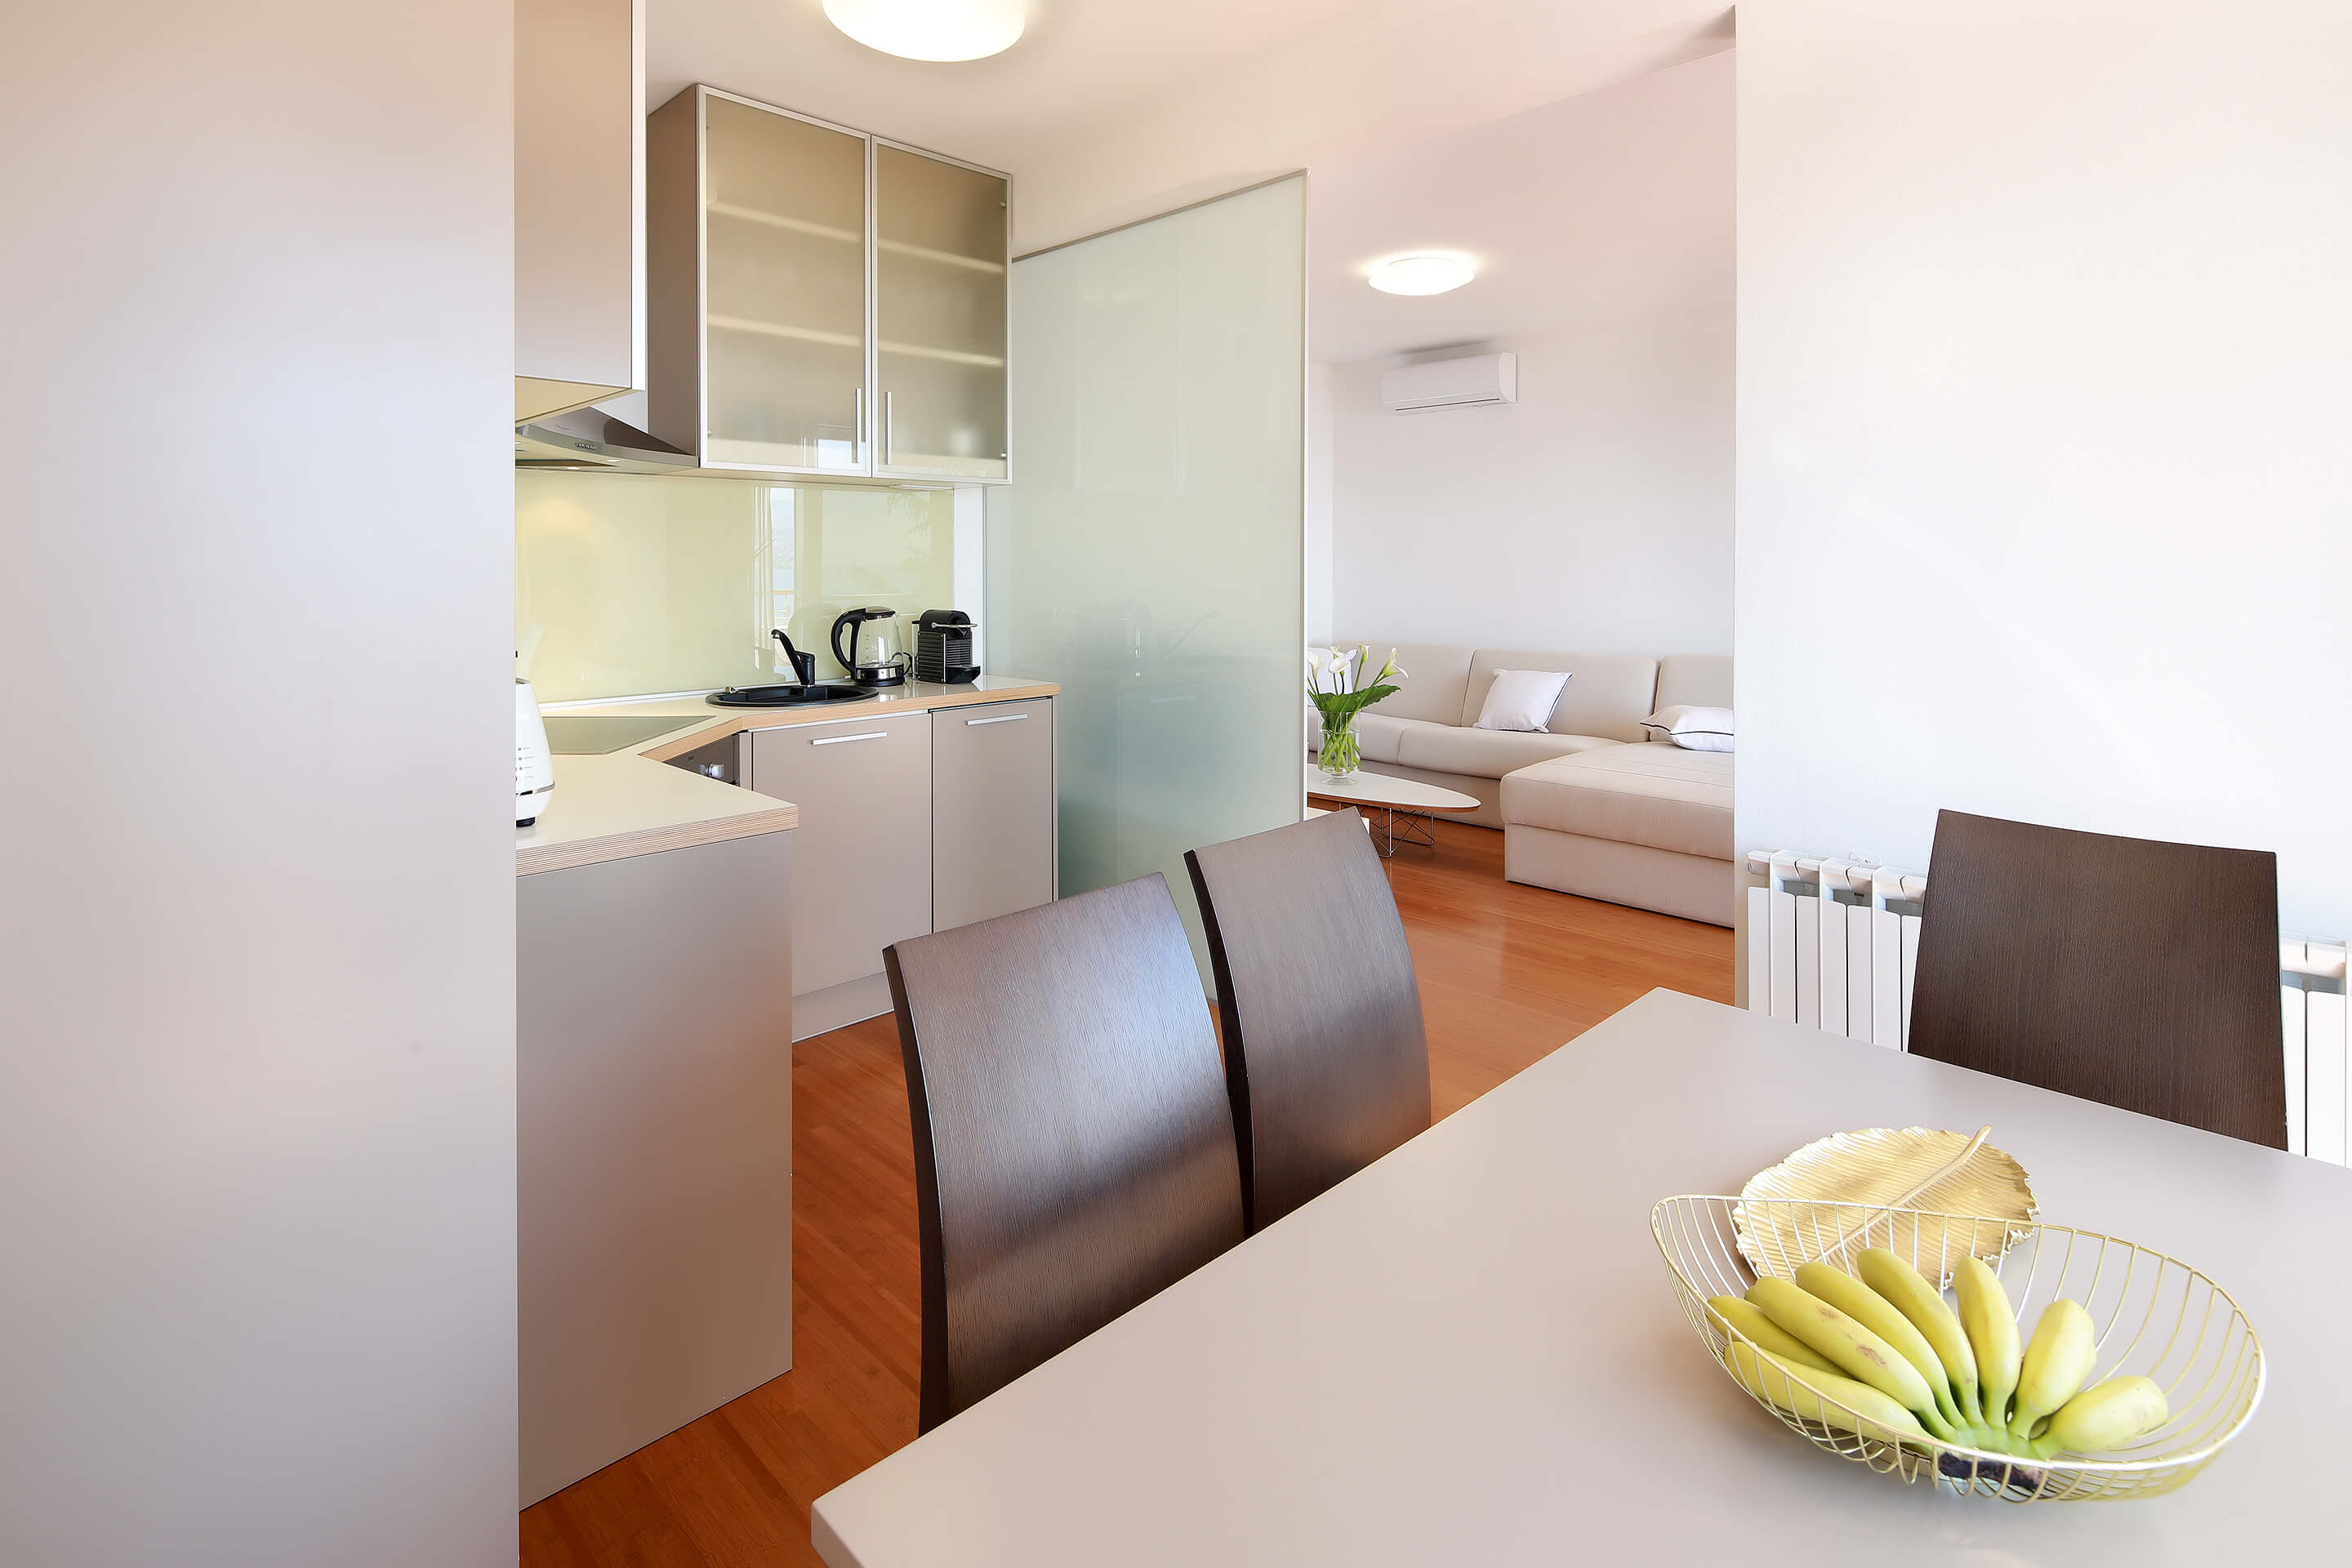 A4 kitchen - dining area - living room - decoration details